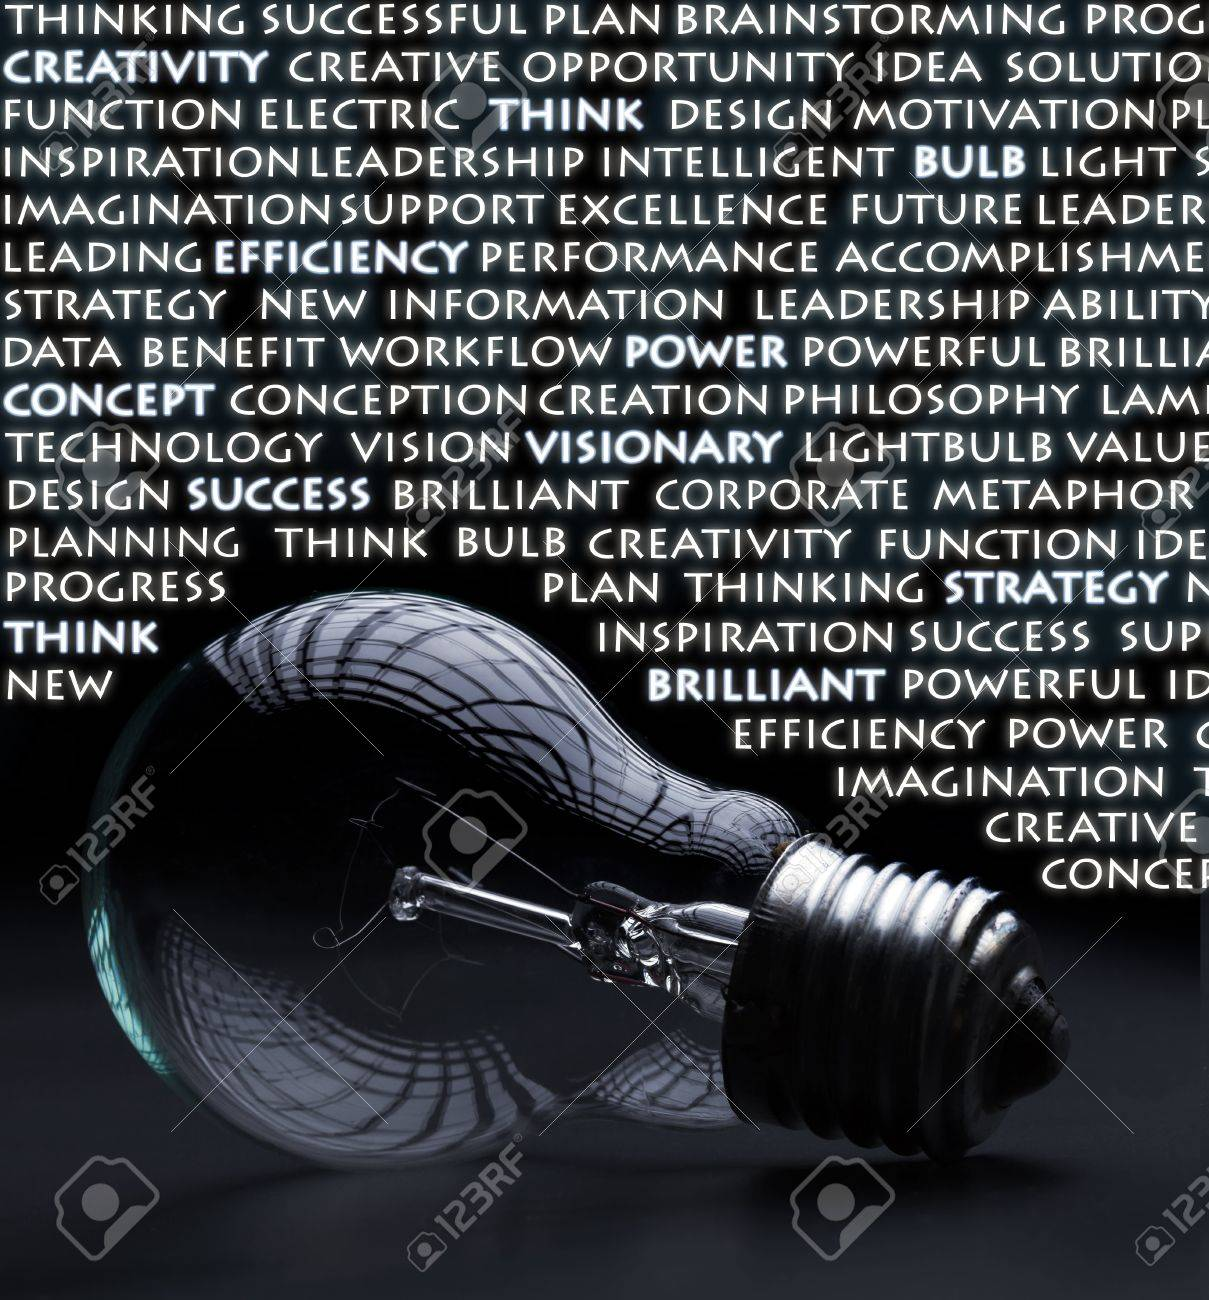 Old incandescent electric bulb with idea and creativity concept words - 12798892